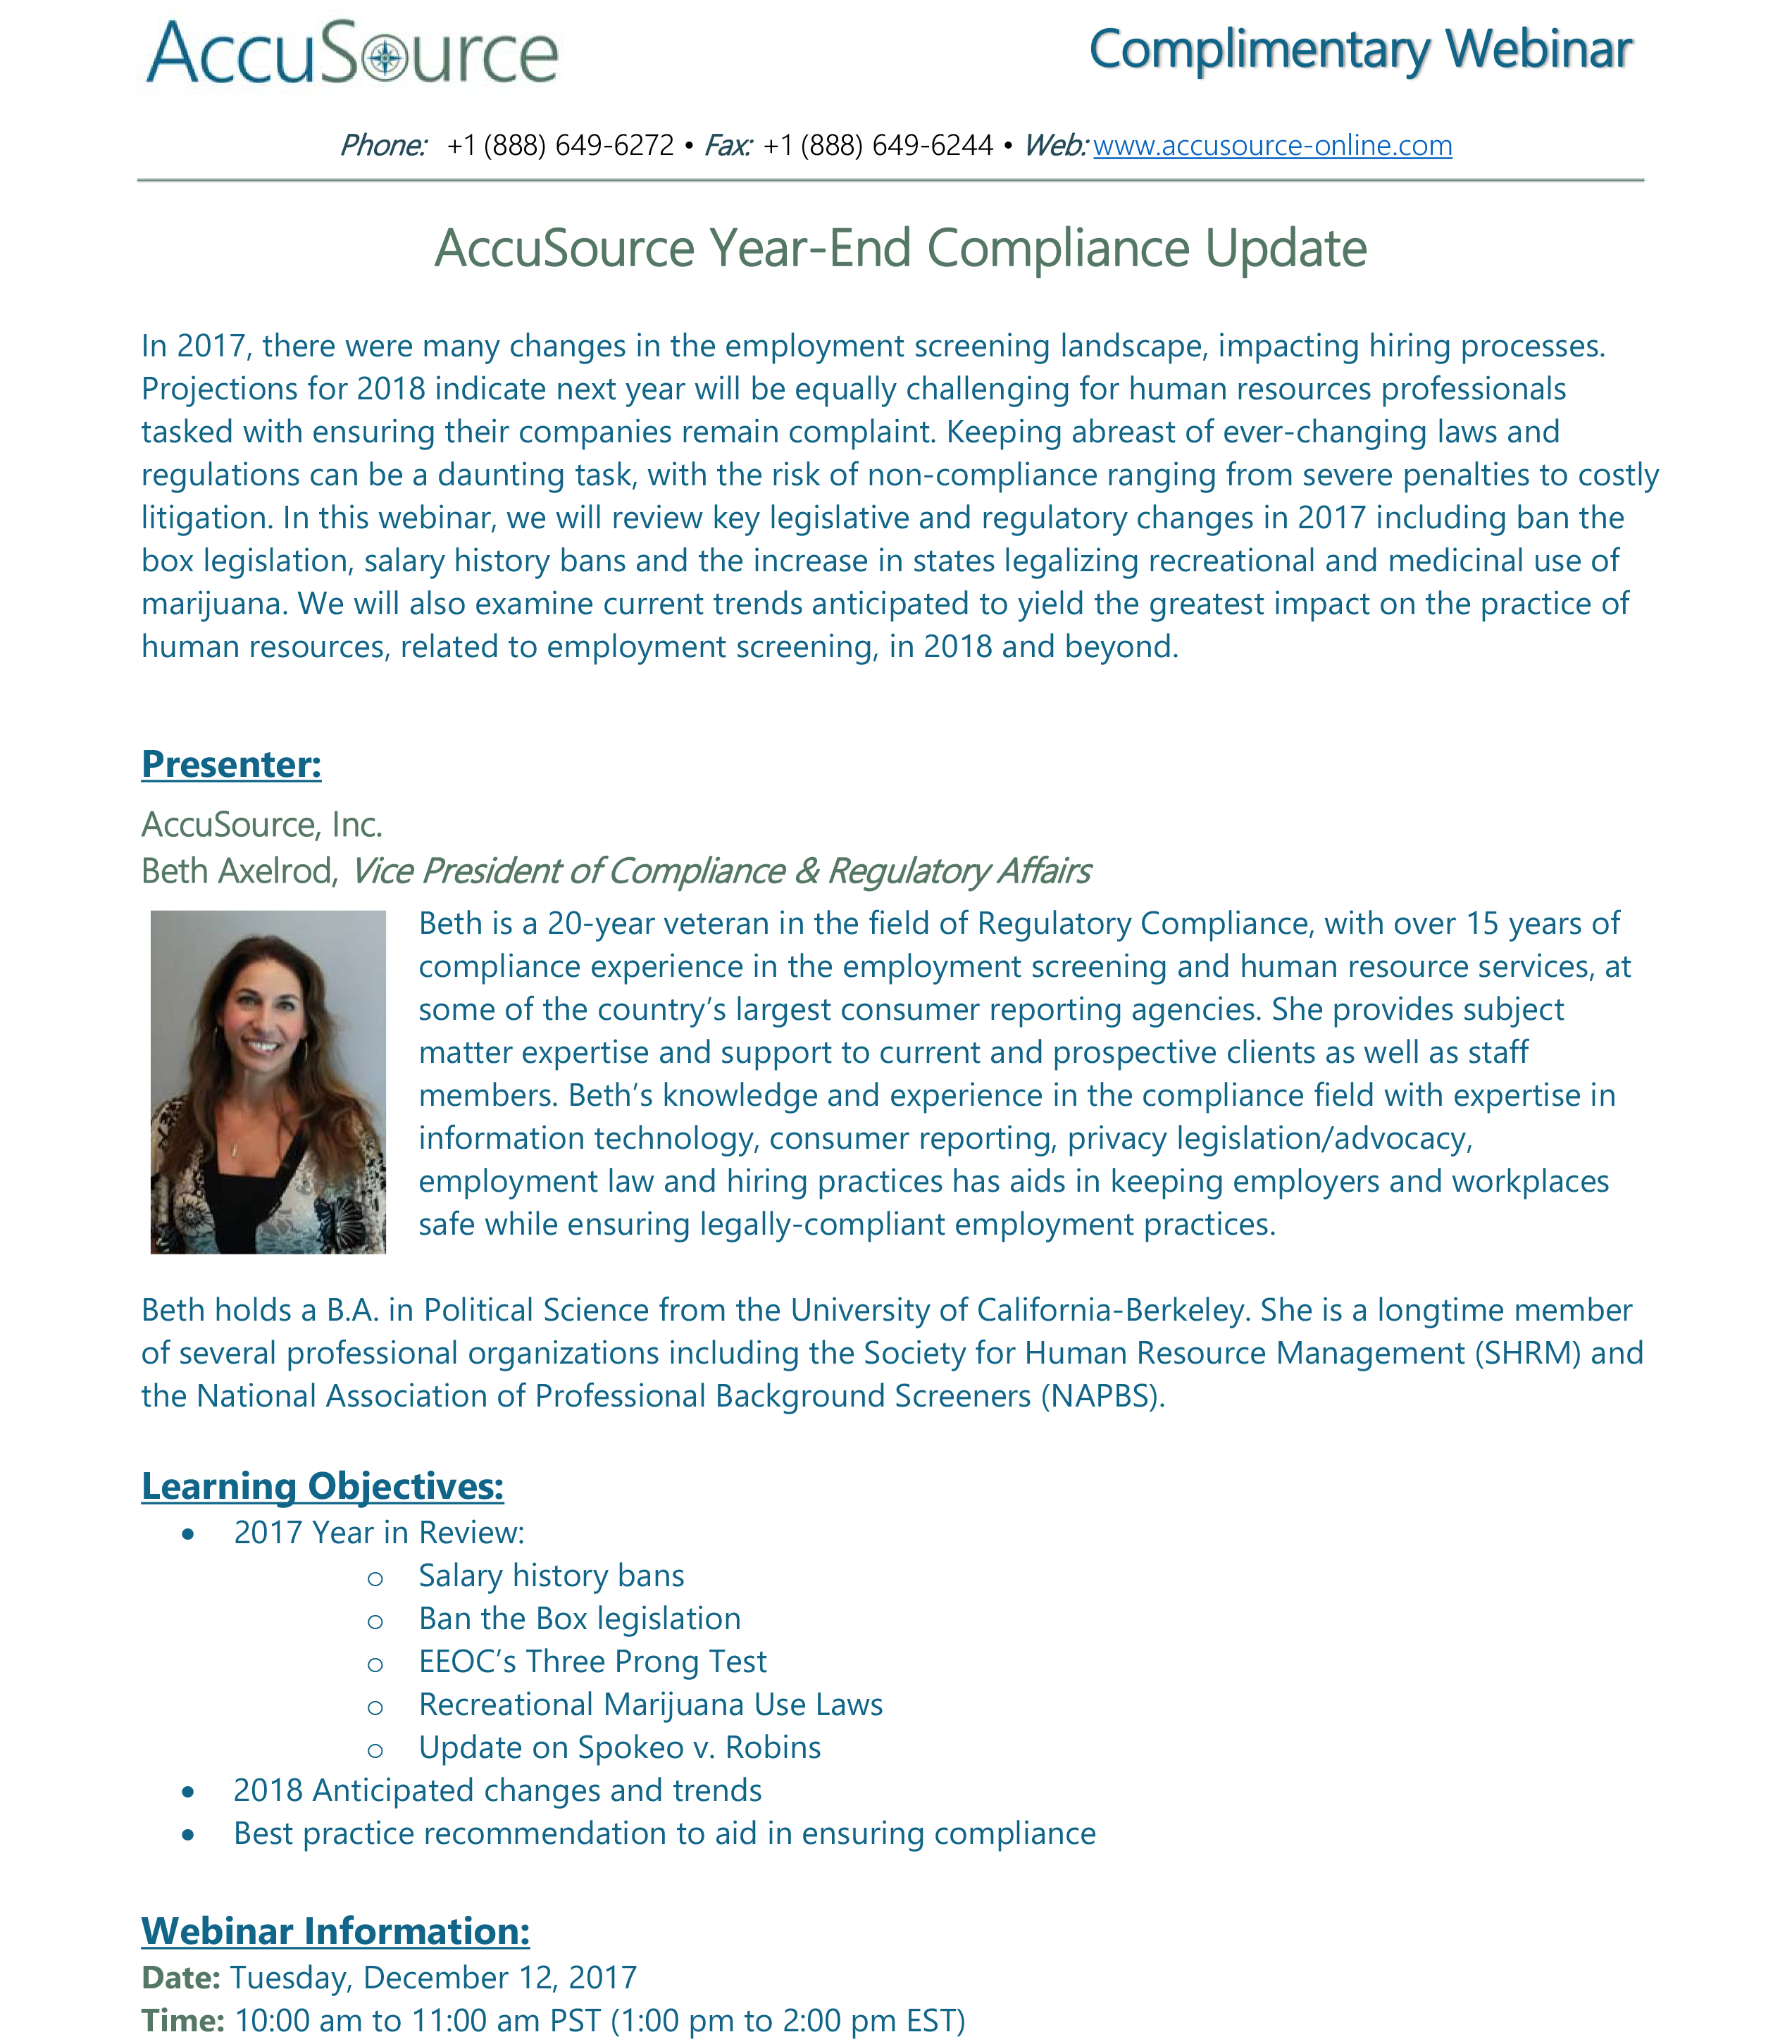 AccuSource's Year-End Compliance Update - Image for blog post